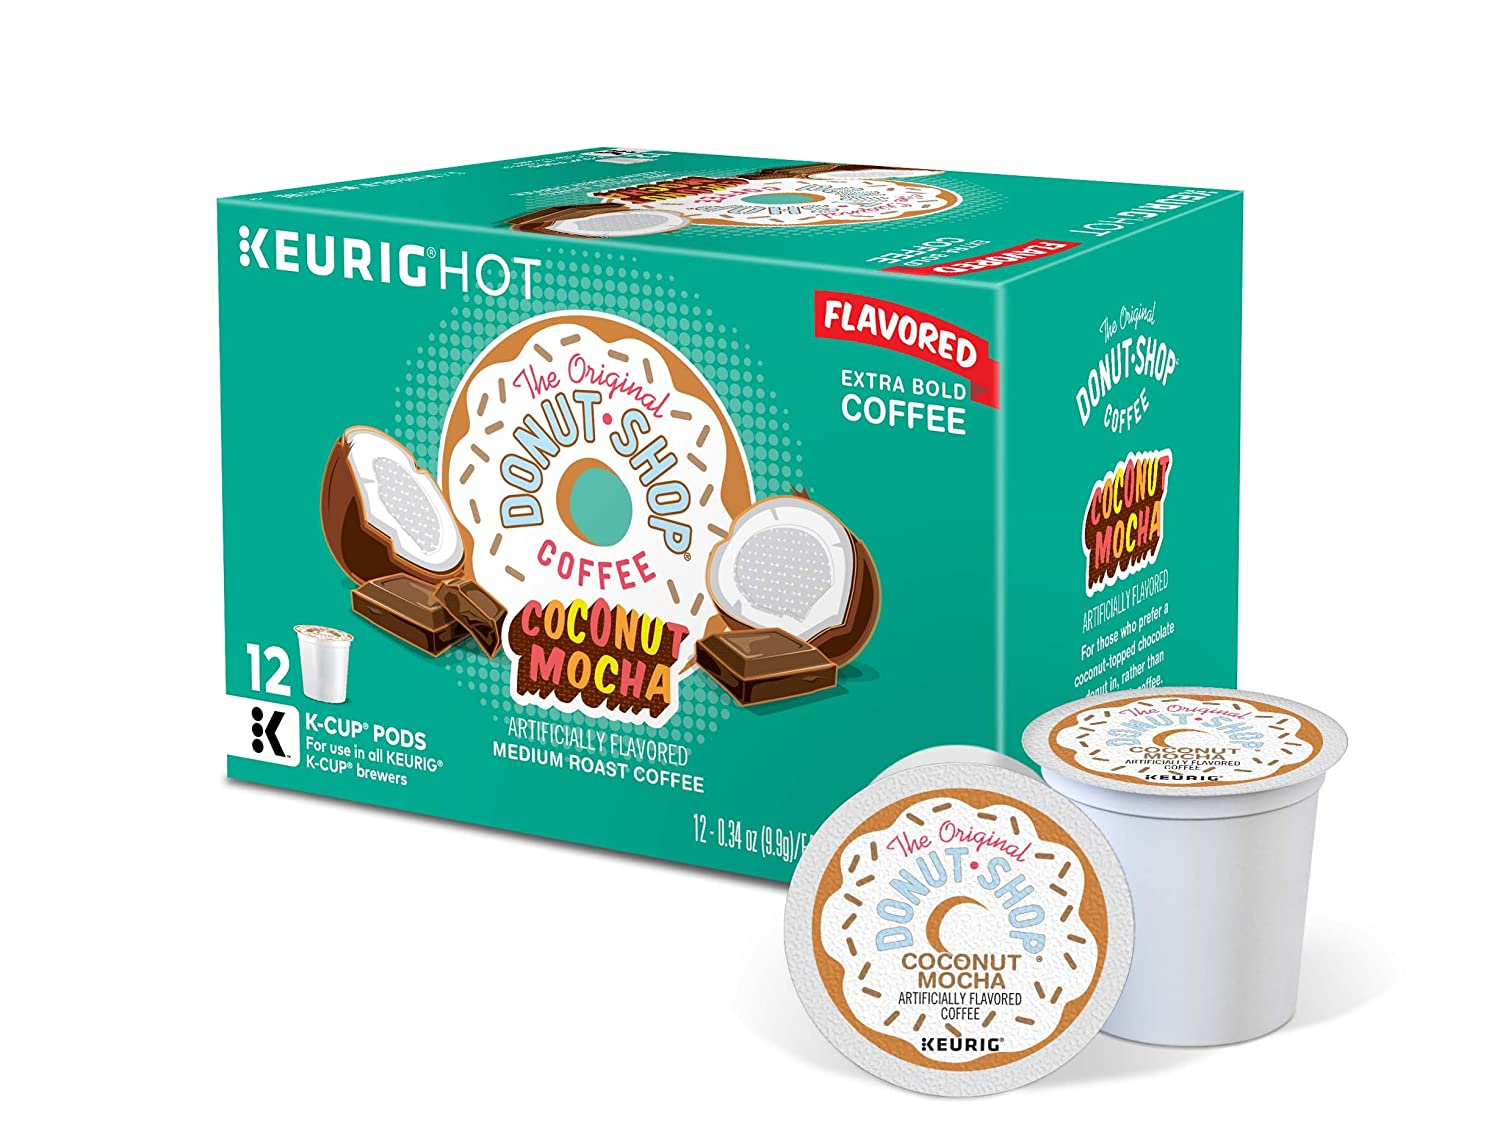 The Original Donut Shop Keurig SingleServe KCup Pods Medium Roast